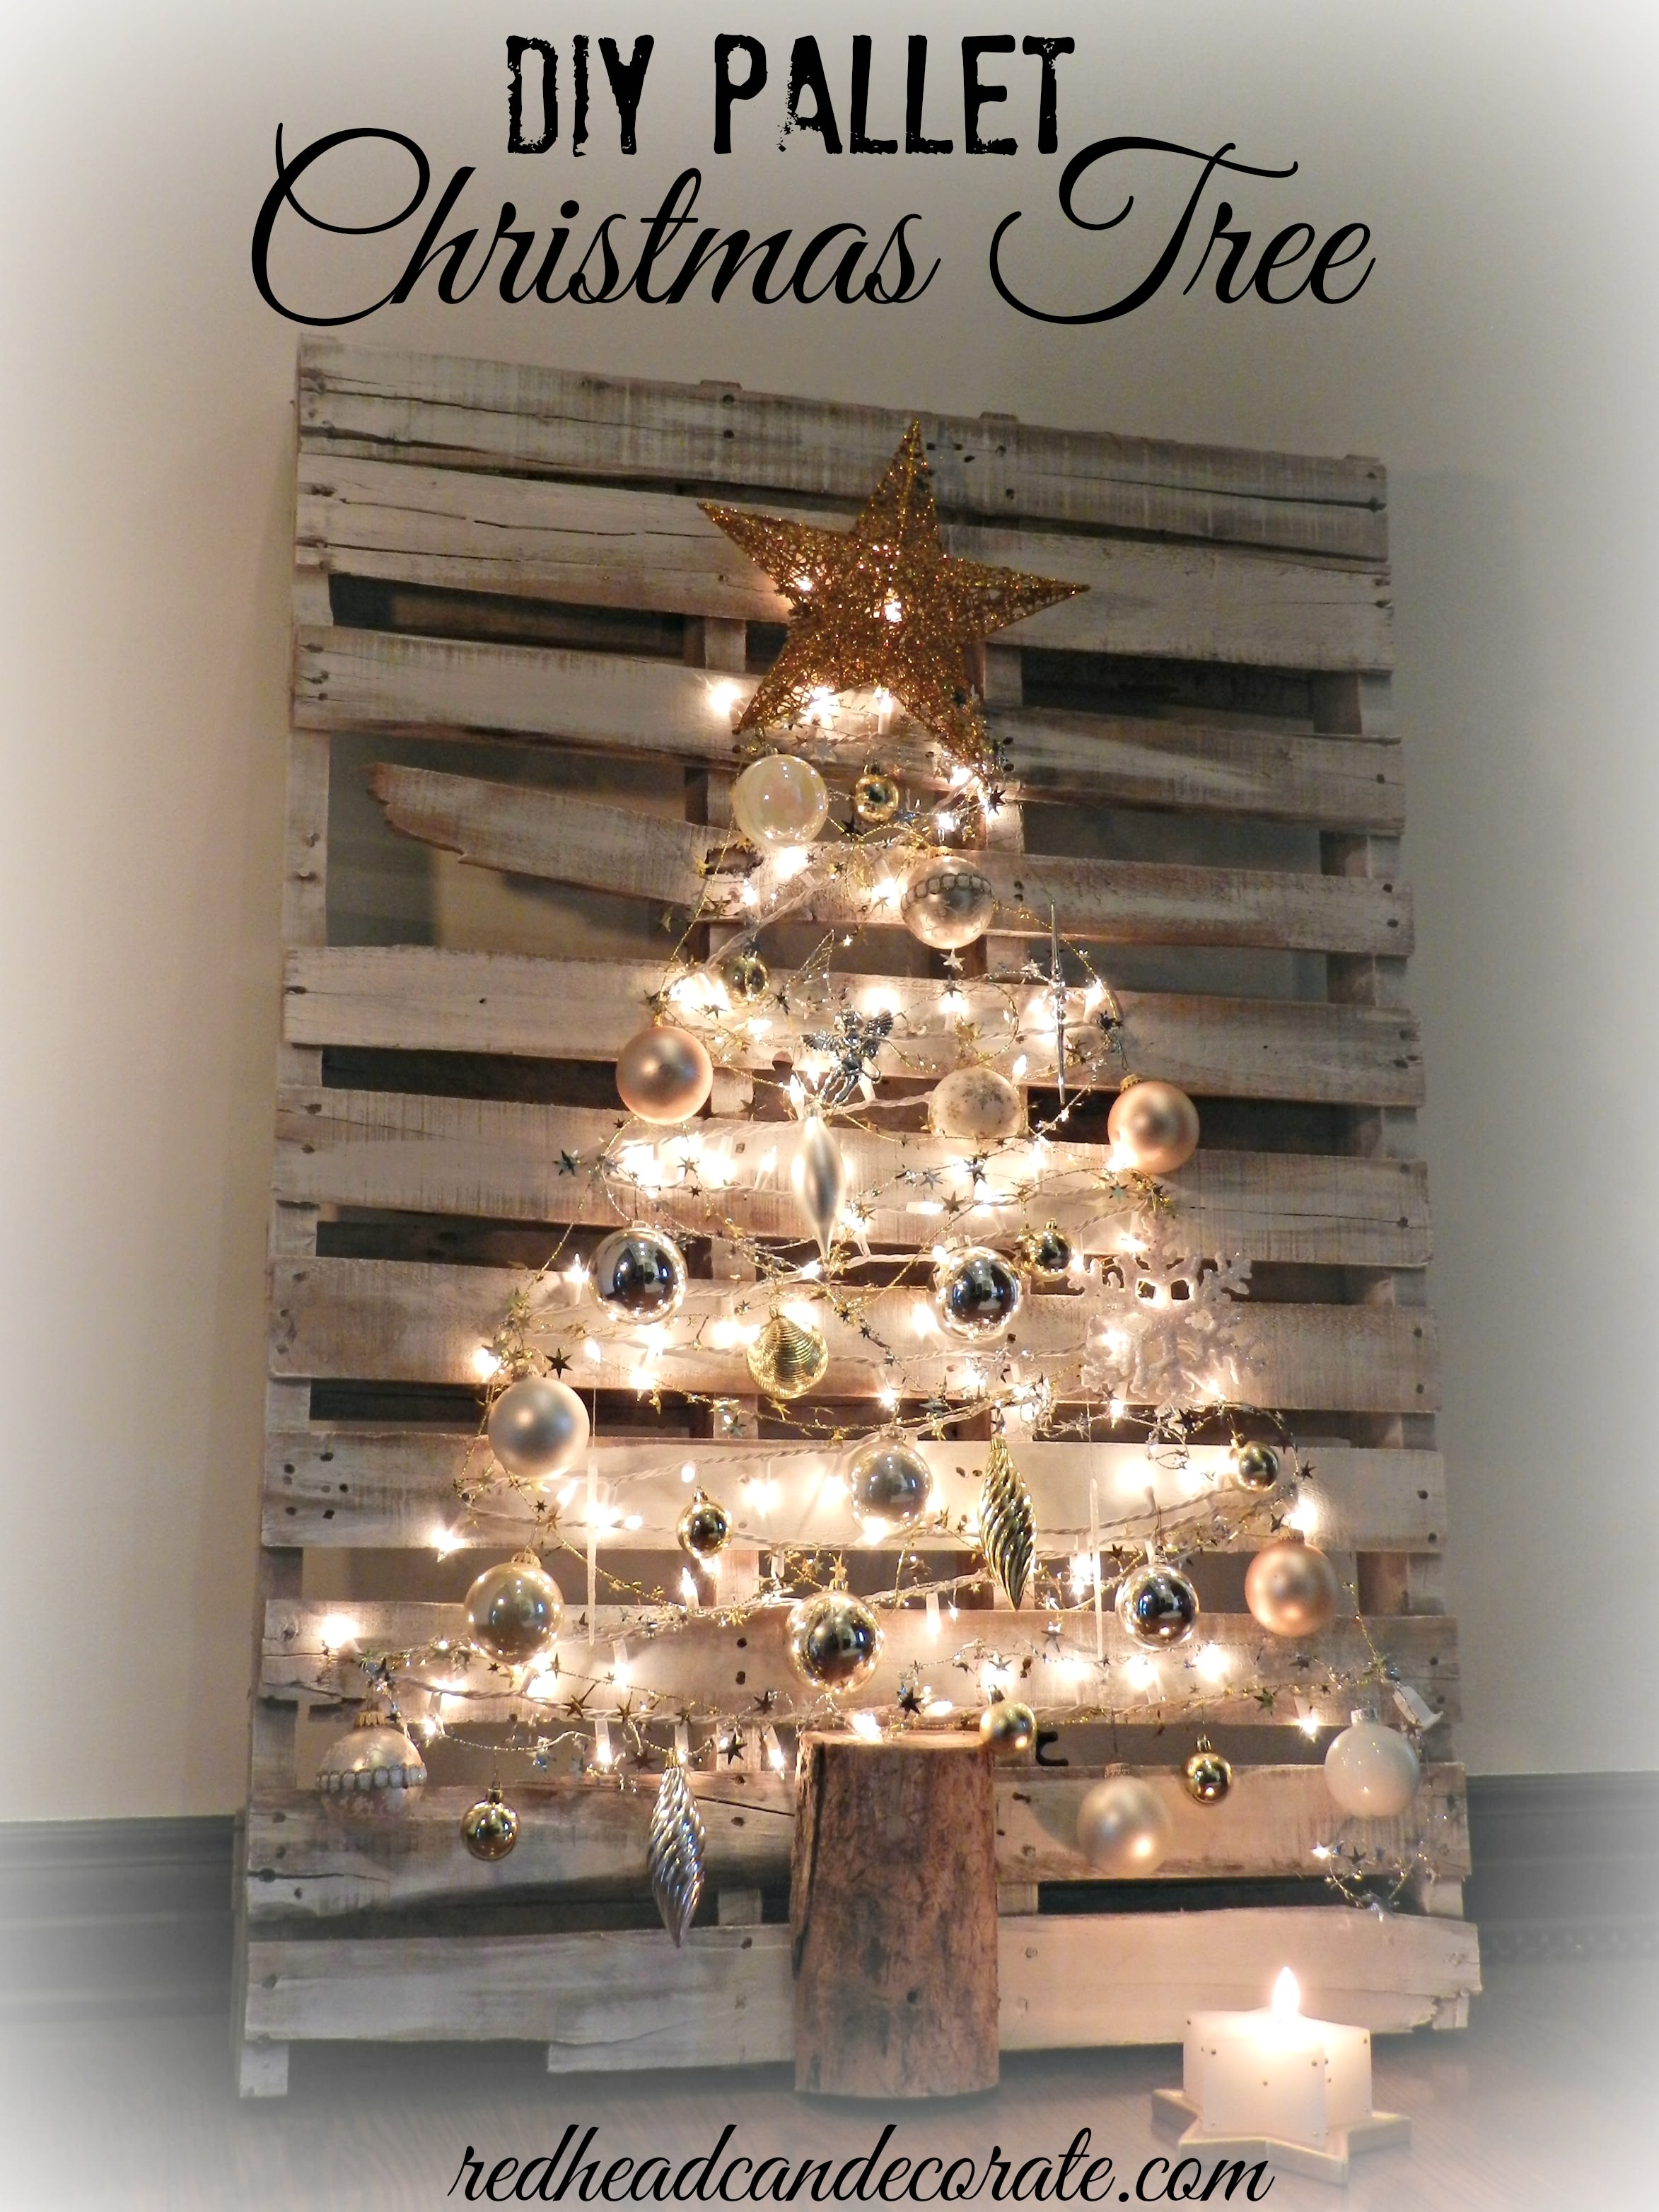 Pallet Wood Christmas Tree.Pallet Christmas Tree Redhead Can Decorate